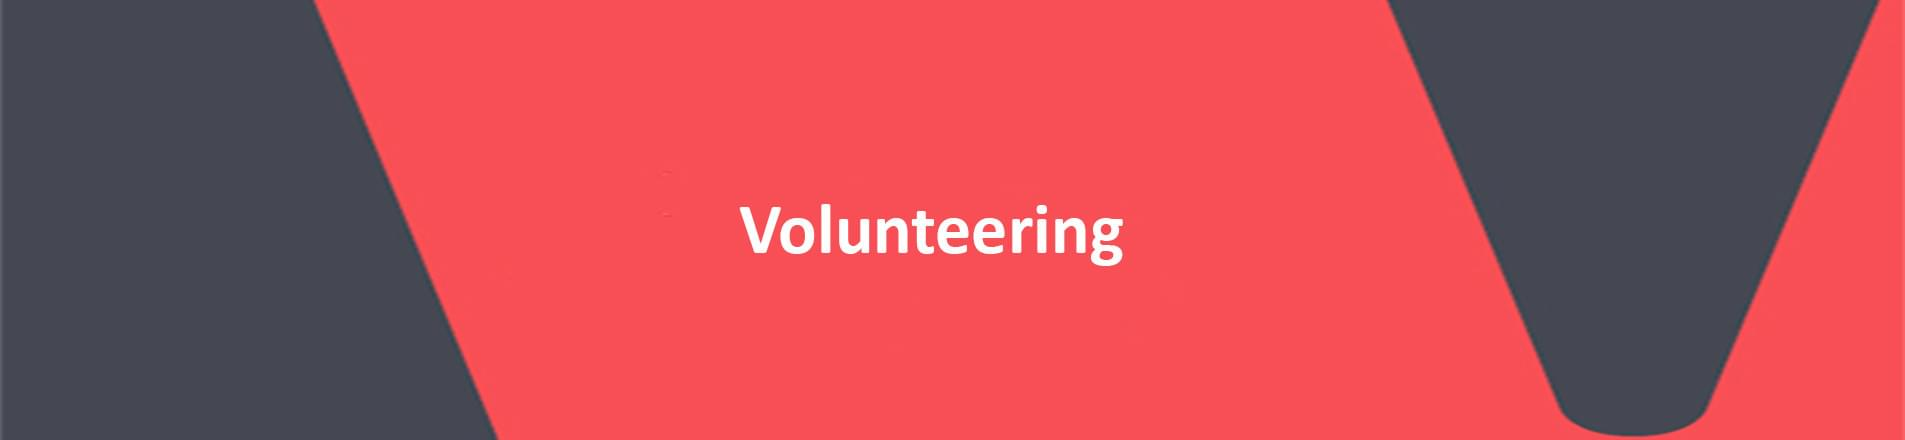 The word 'Volunteering' on red VERCIDA background